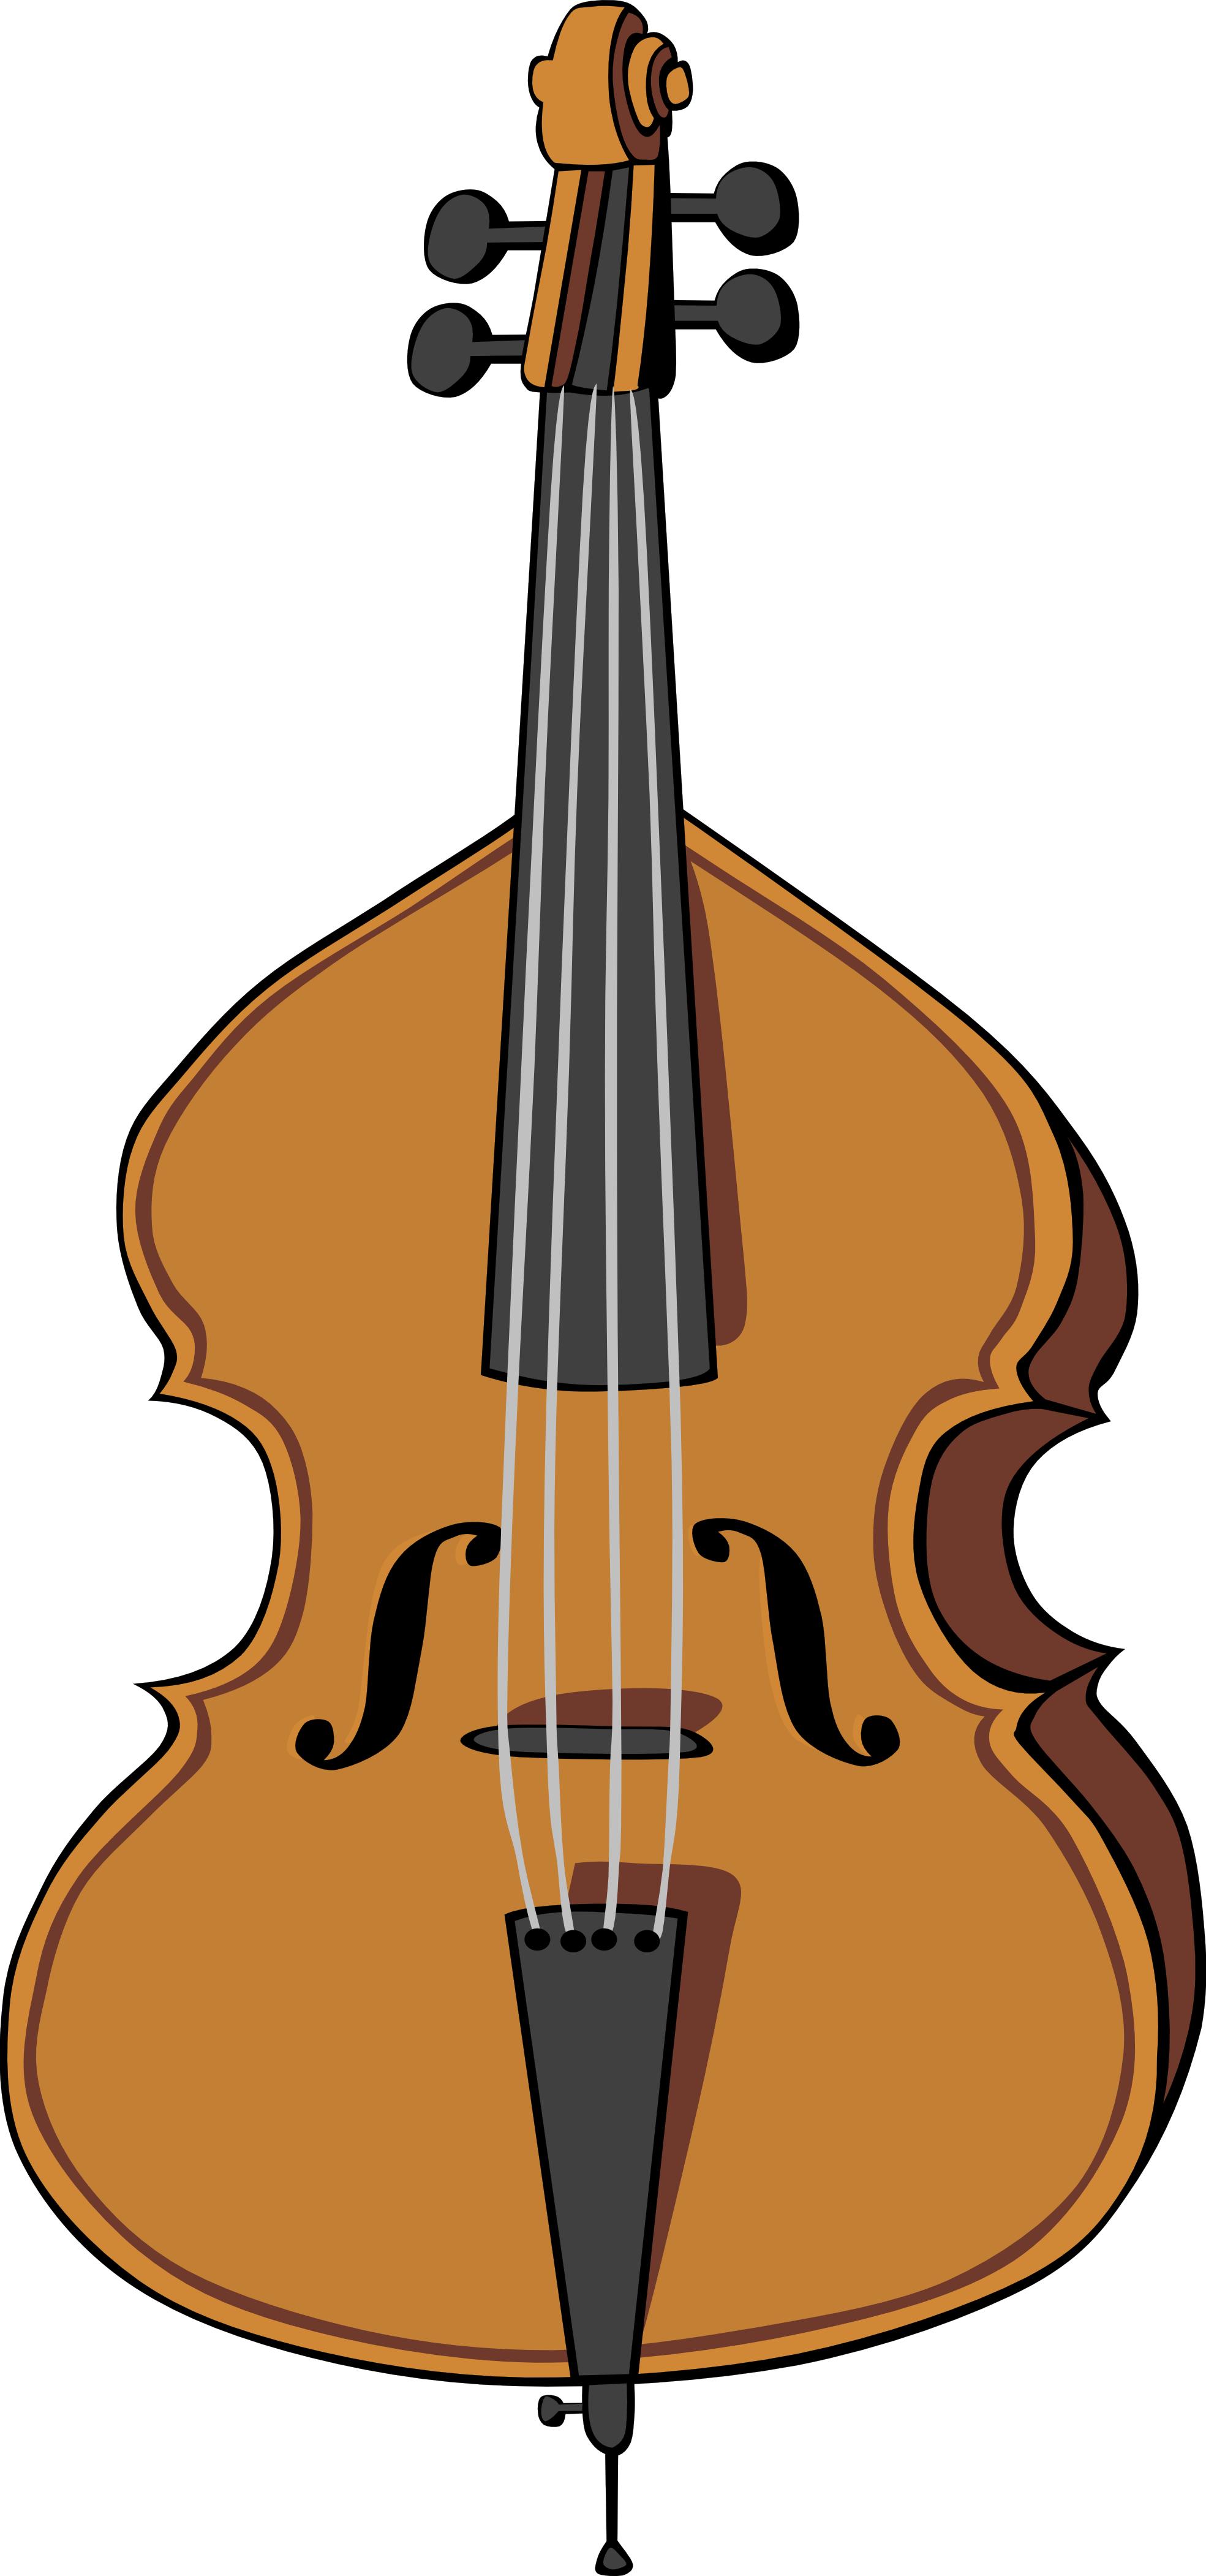 Violin clipart double bass. Image of images clipartoons